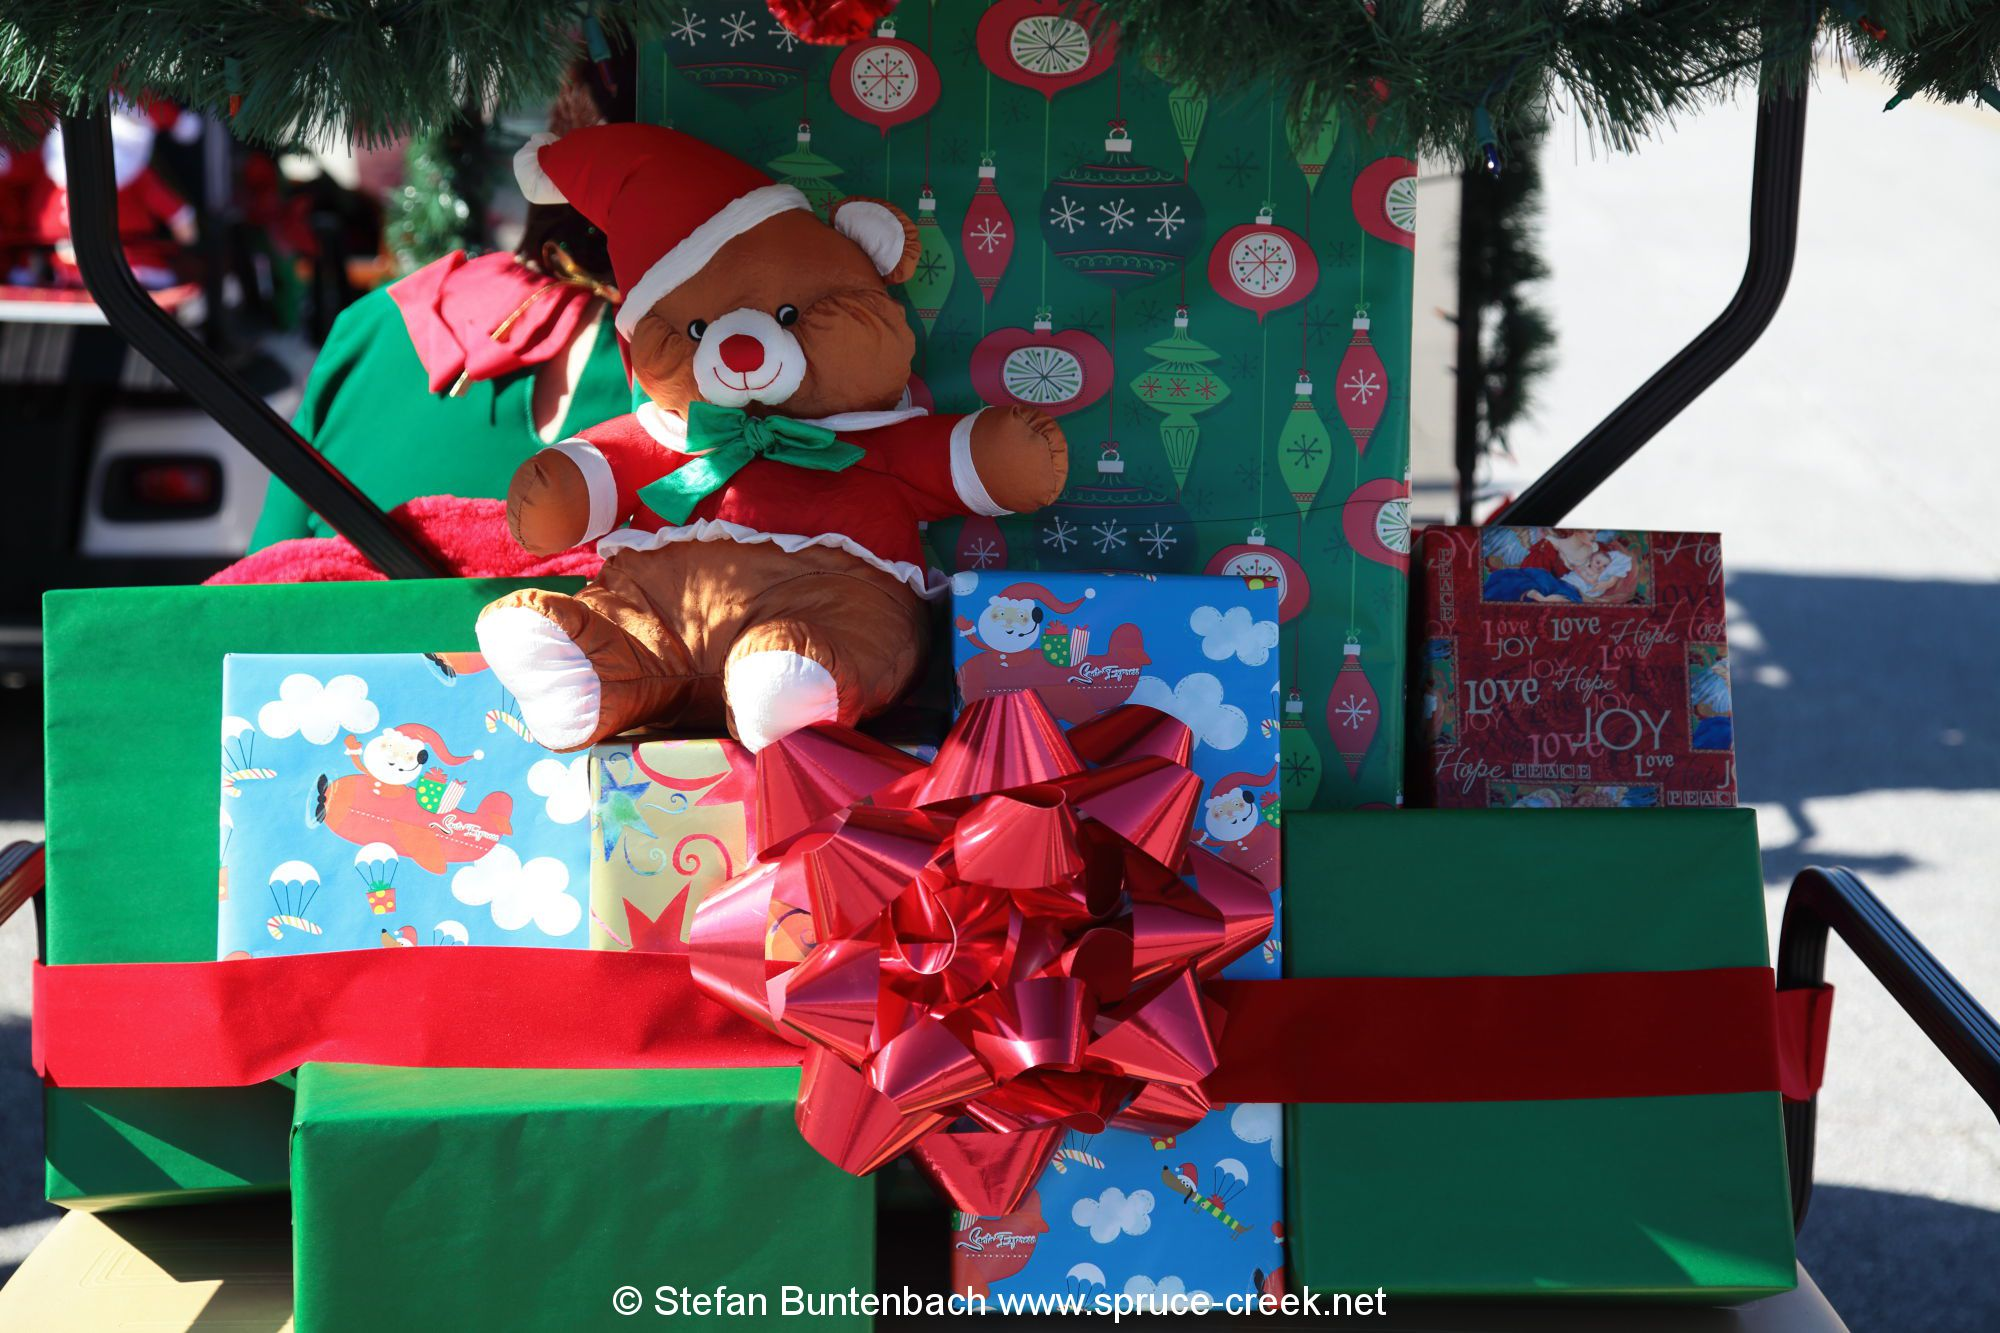 Spruce-Creek-Toyparade-2015- IMG_1173